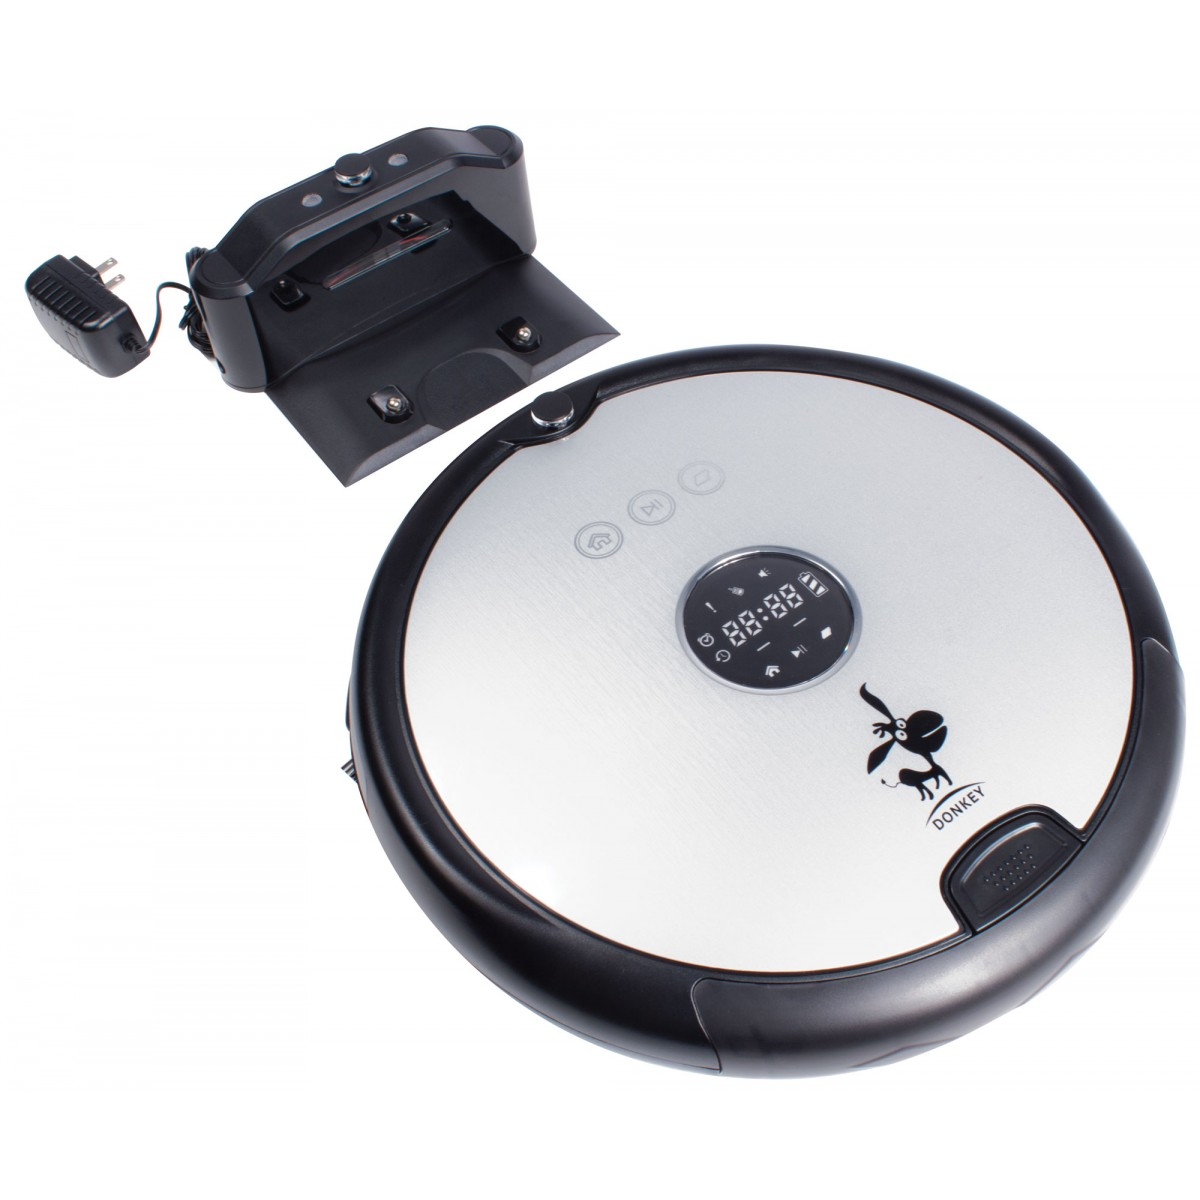 Donkey dl880 robot vacuum cleaner for Robot sweepy